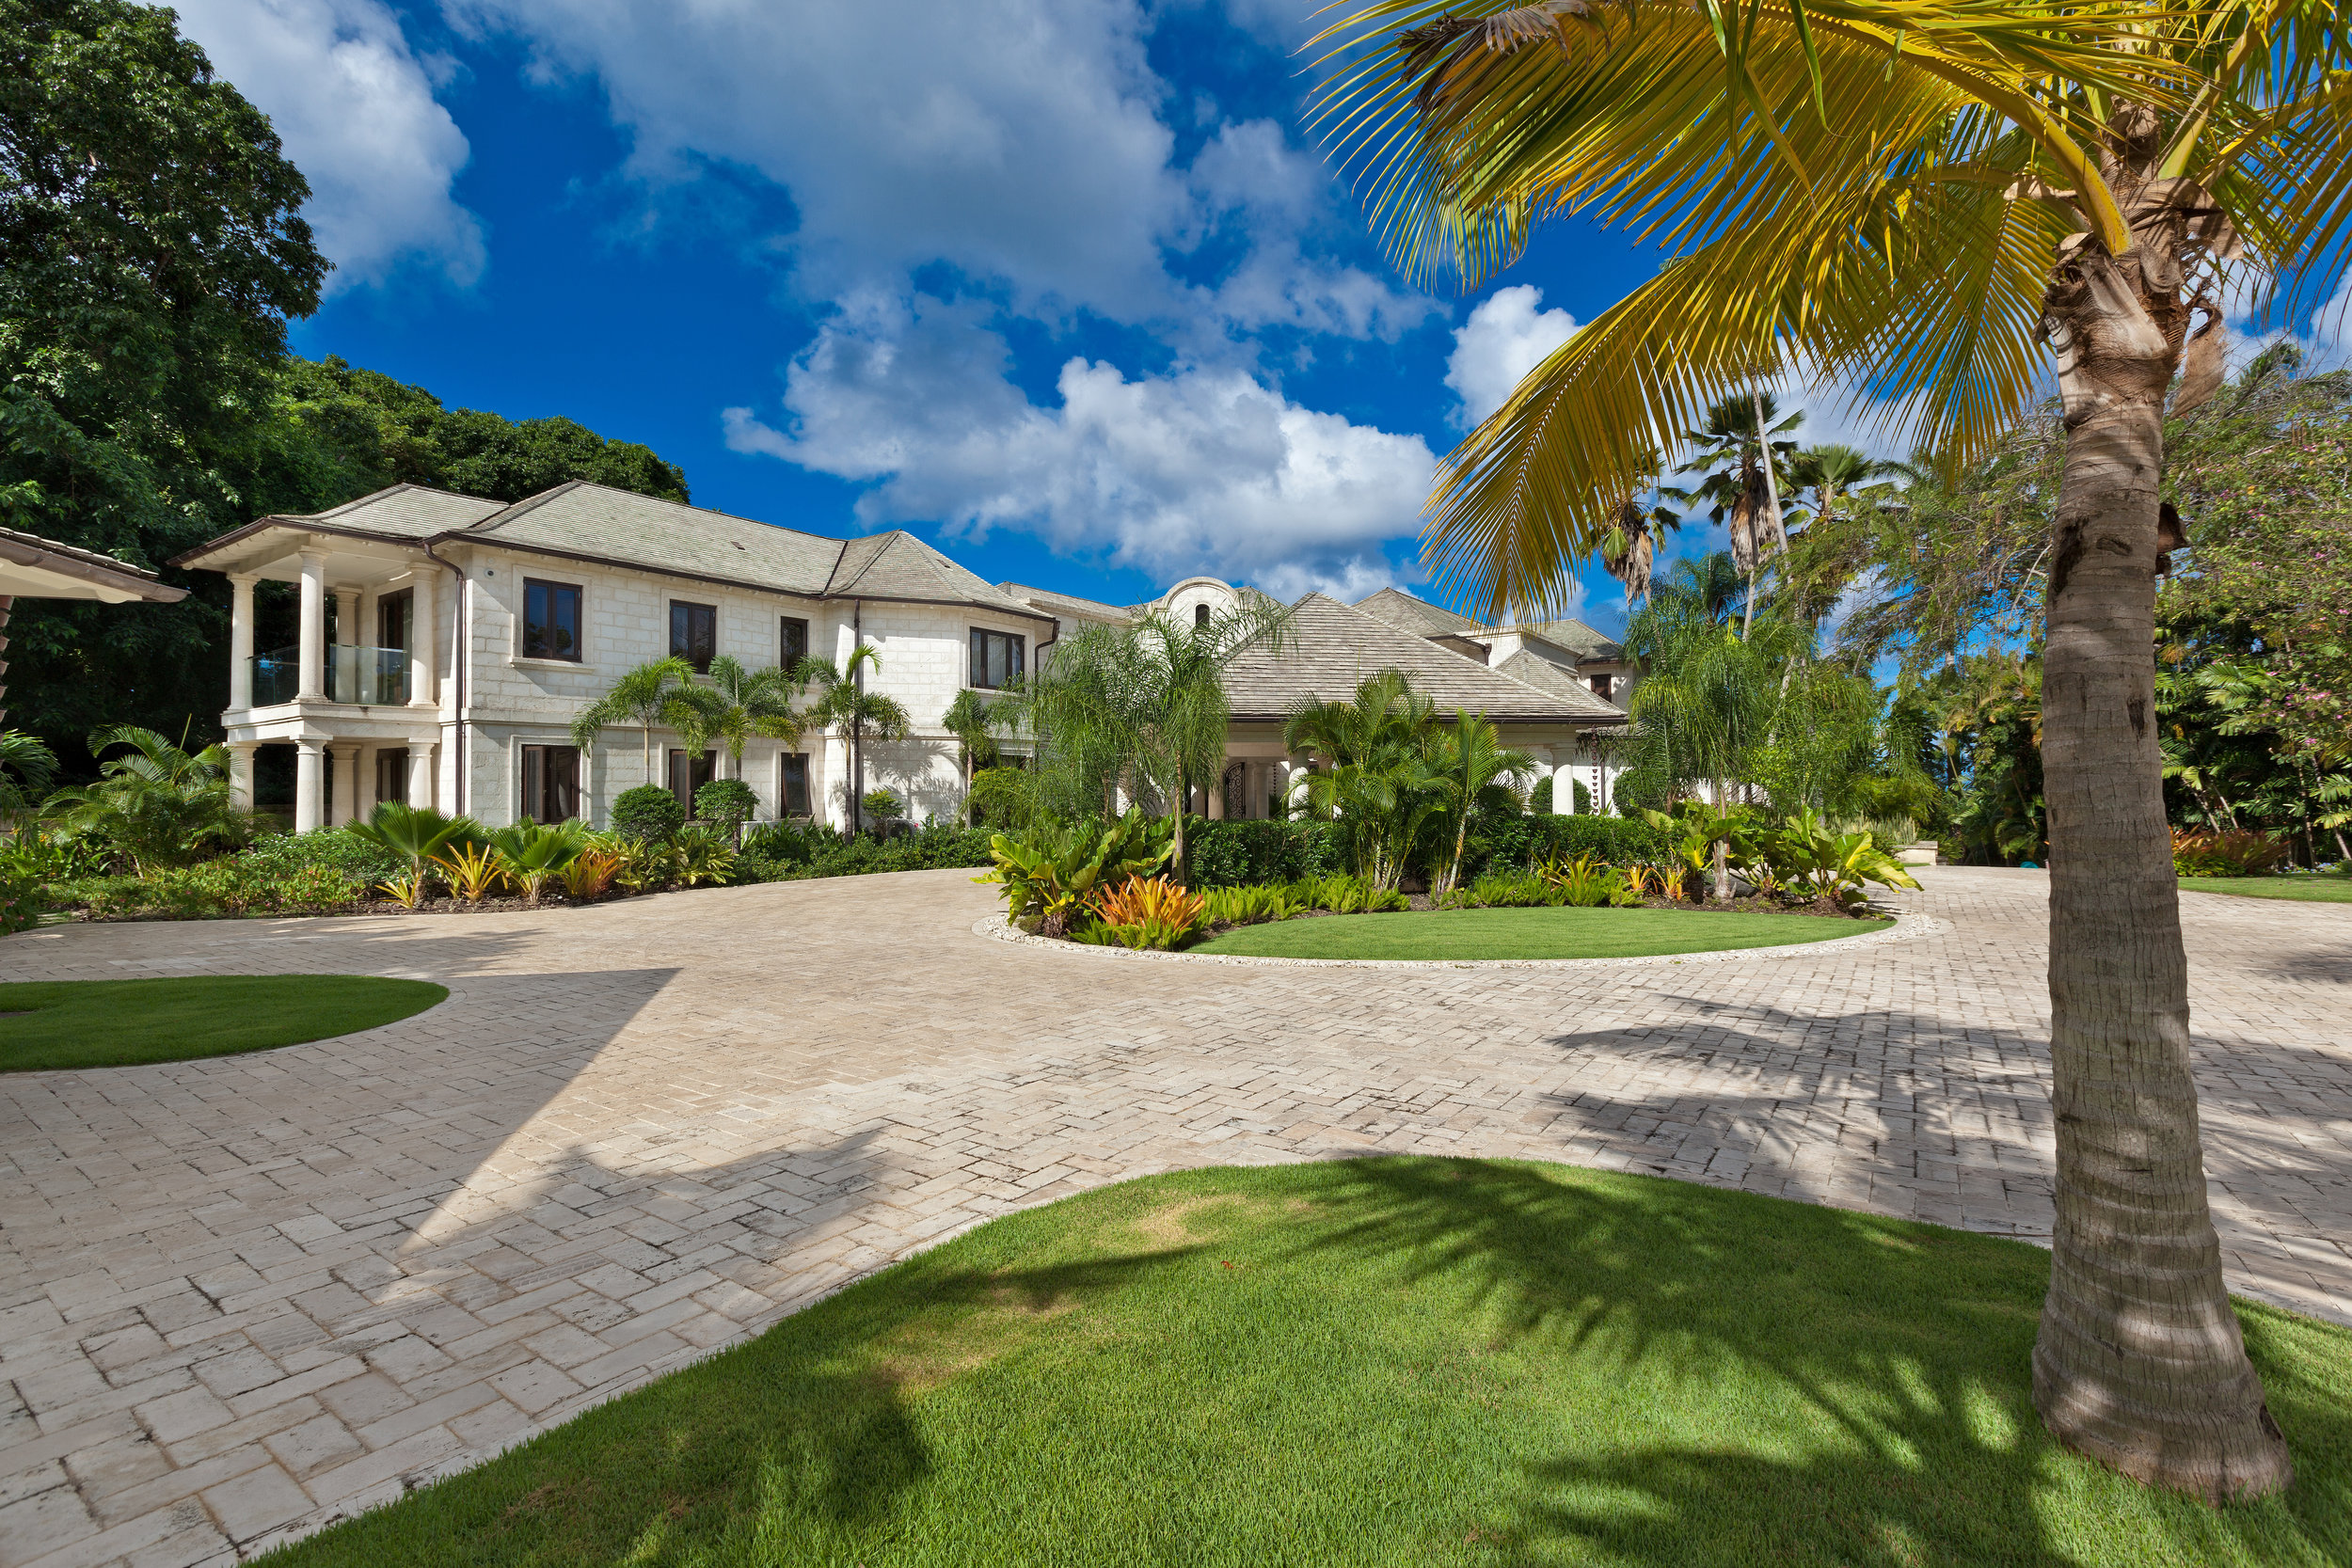 Sanzura Villa on the West Coast of Barbados designed by Andre Kelshall